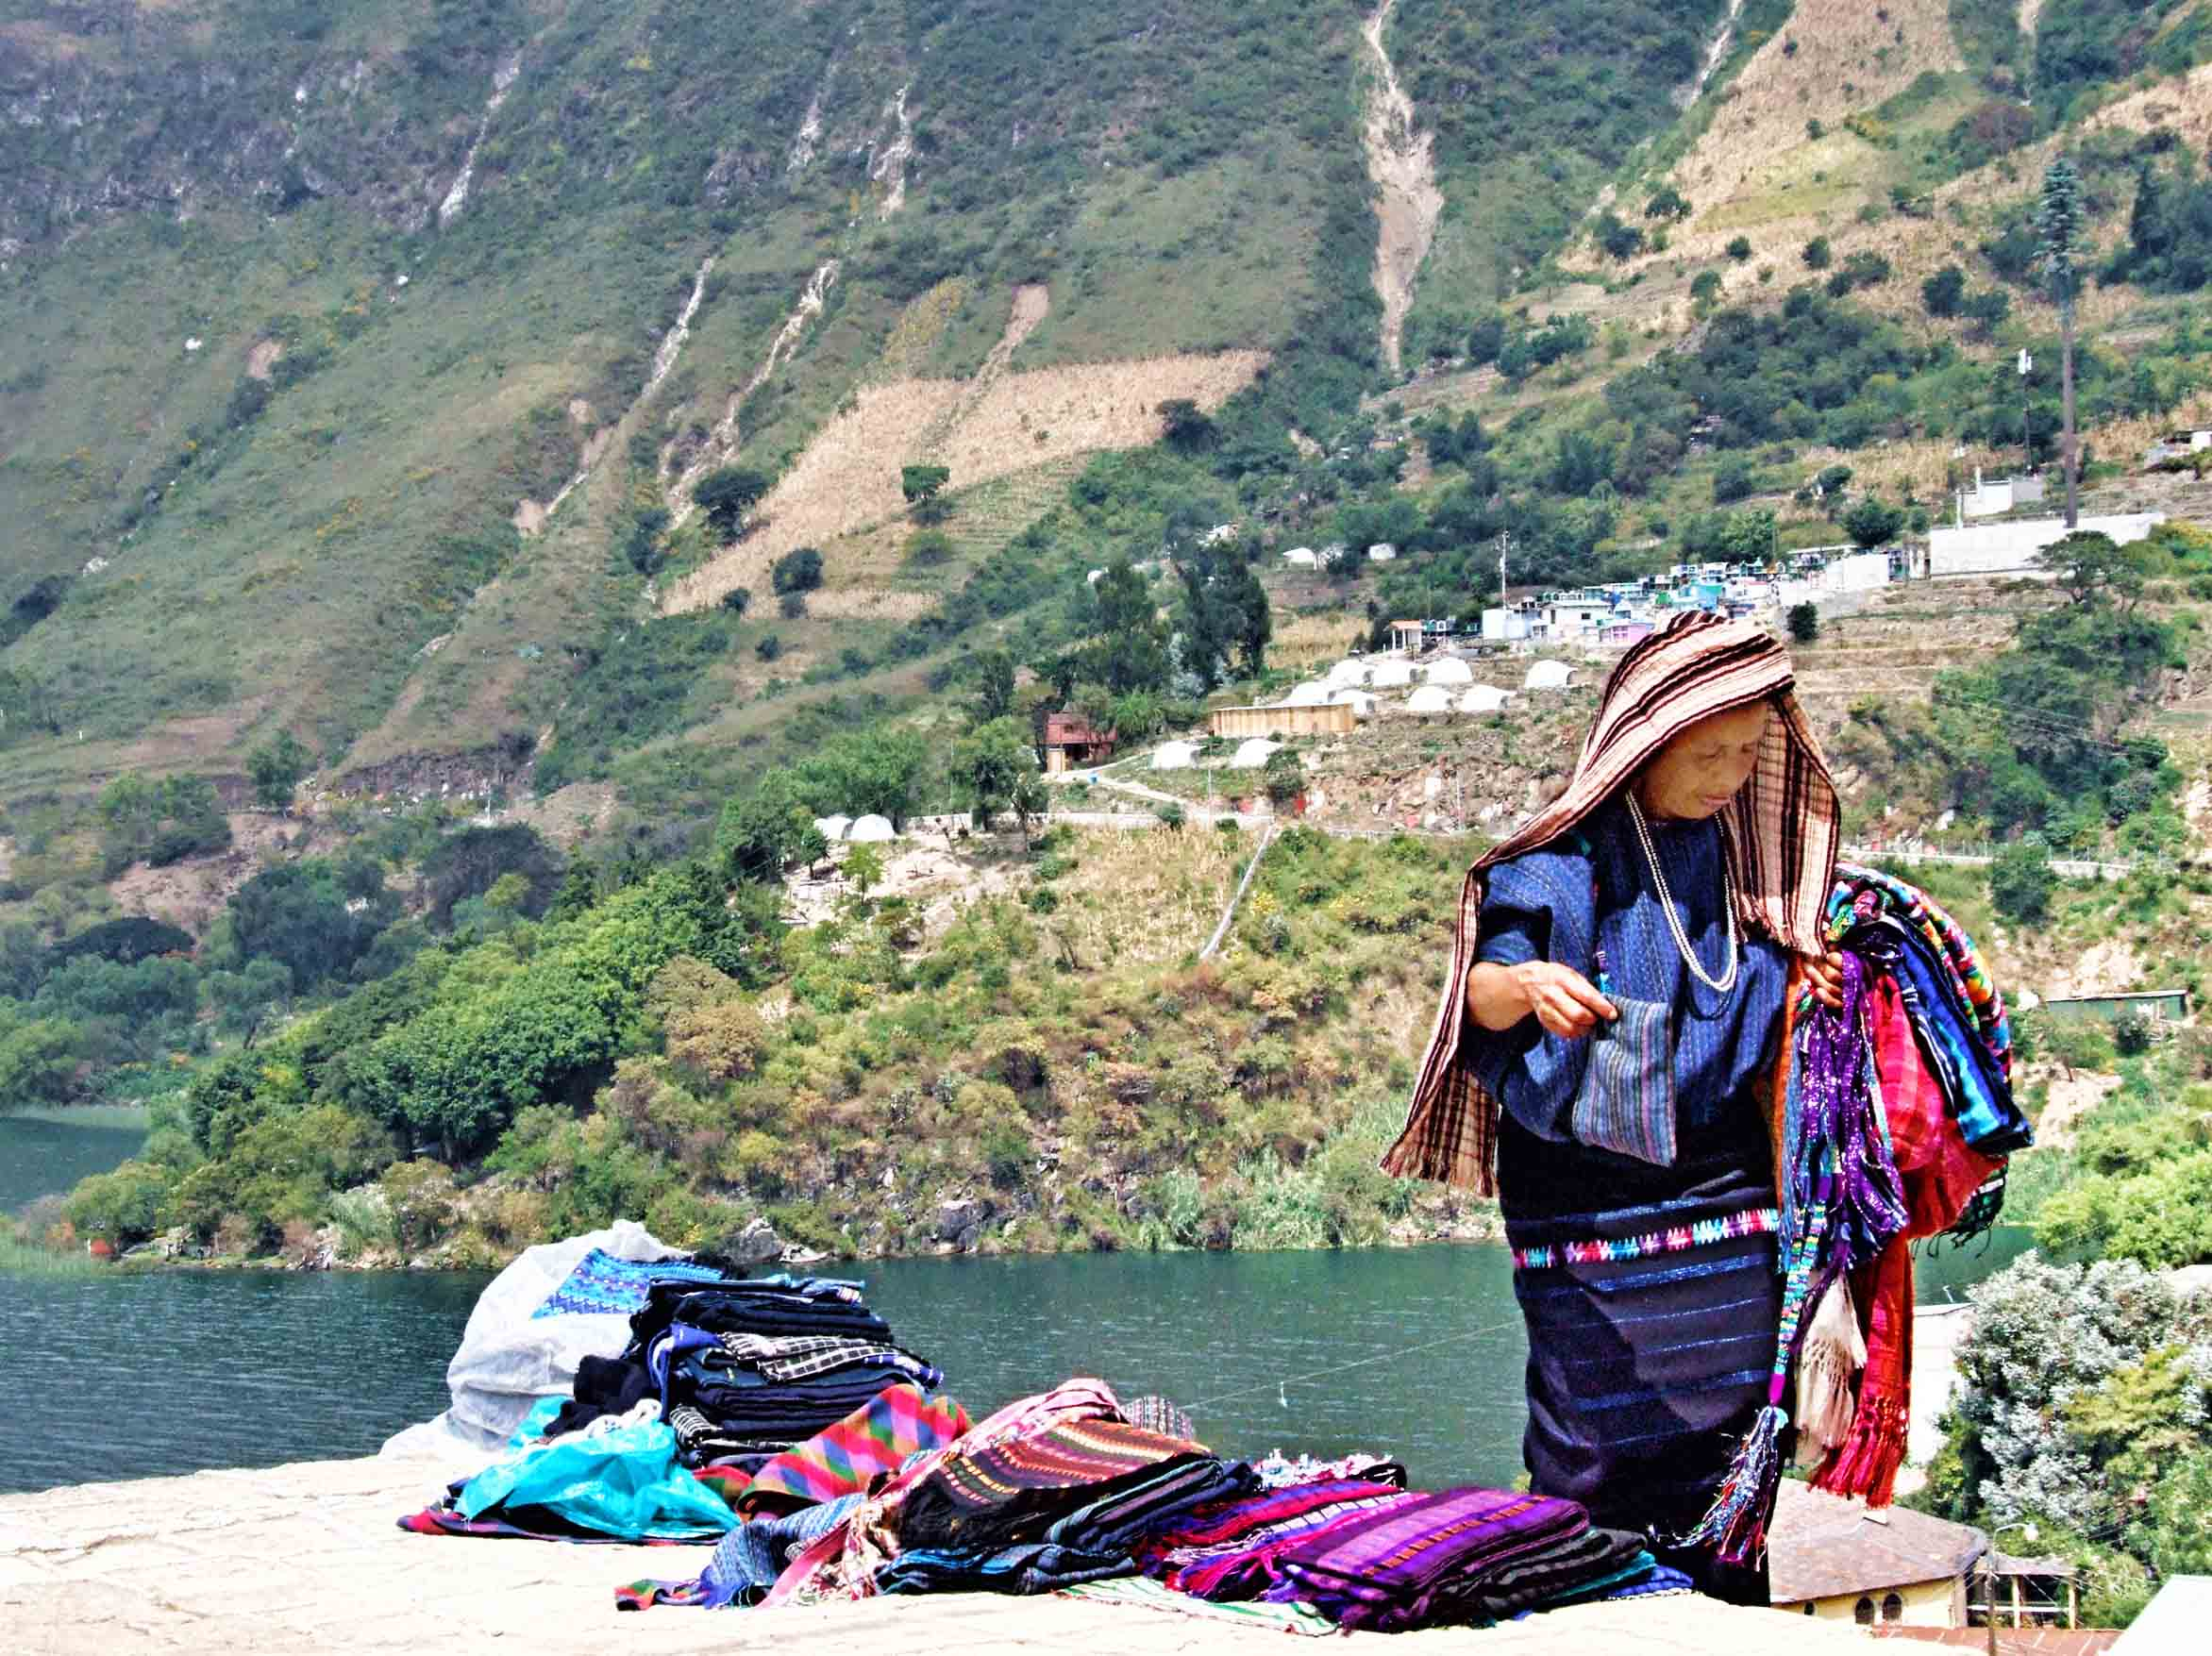 Woman in traditional blue clothing by a lake